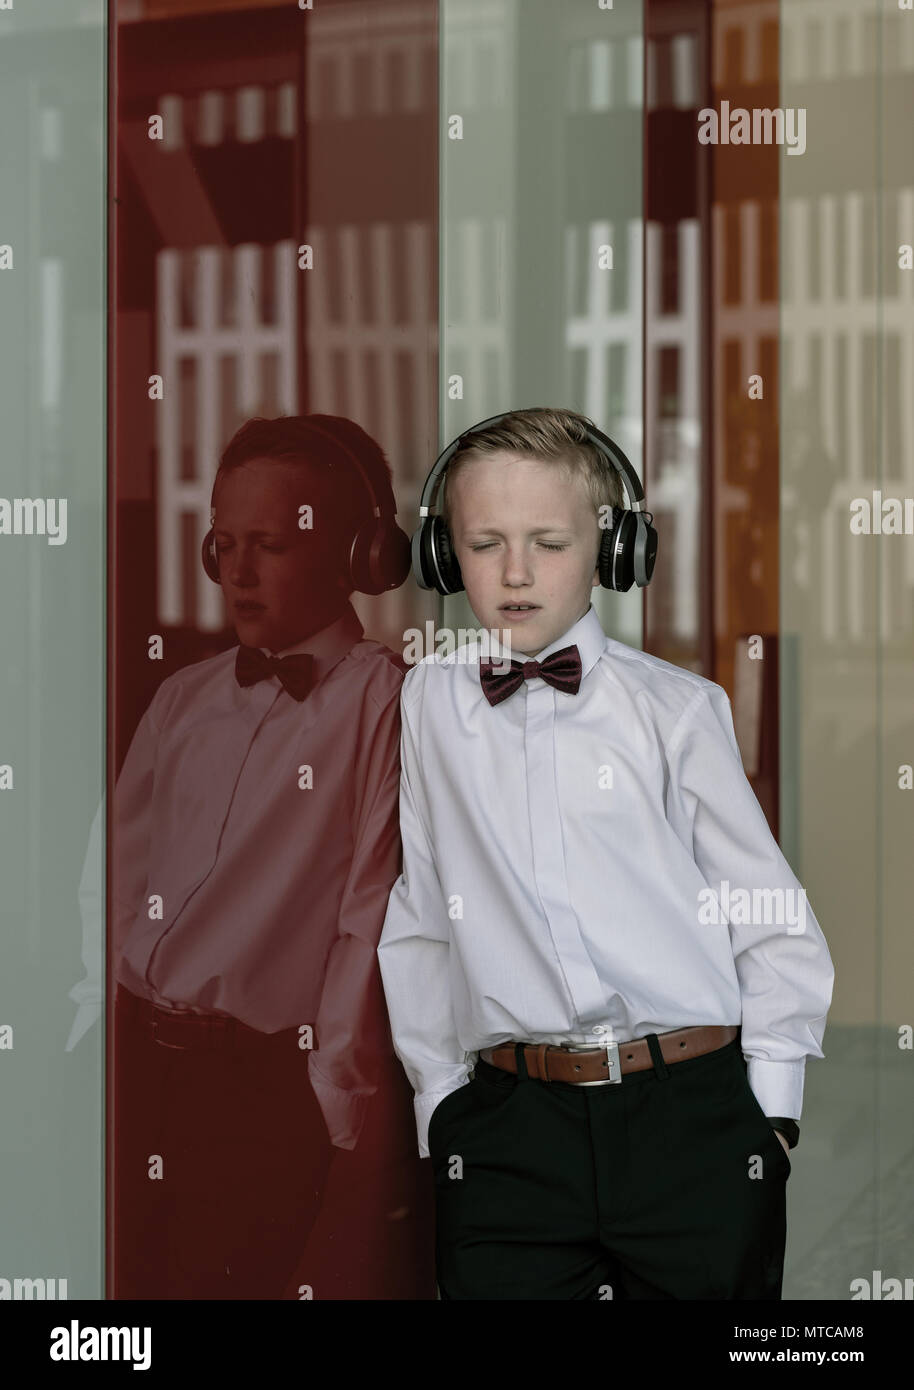 Boy with headphones. Stock Photo